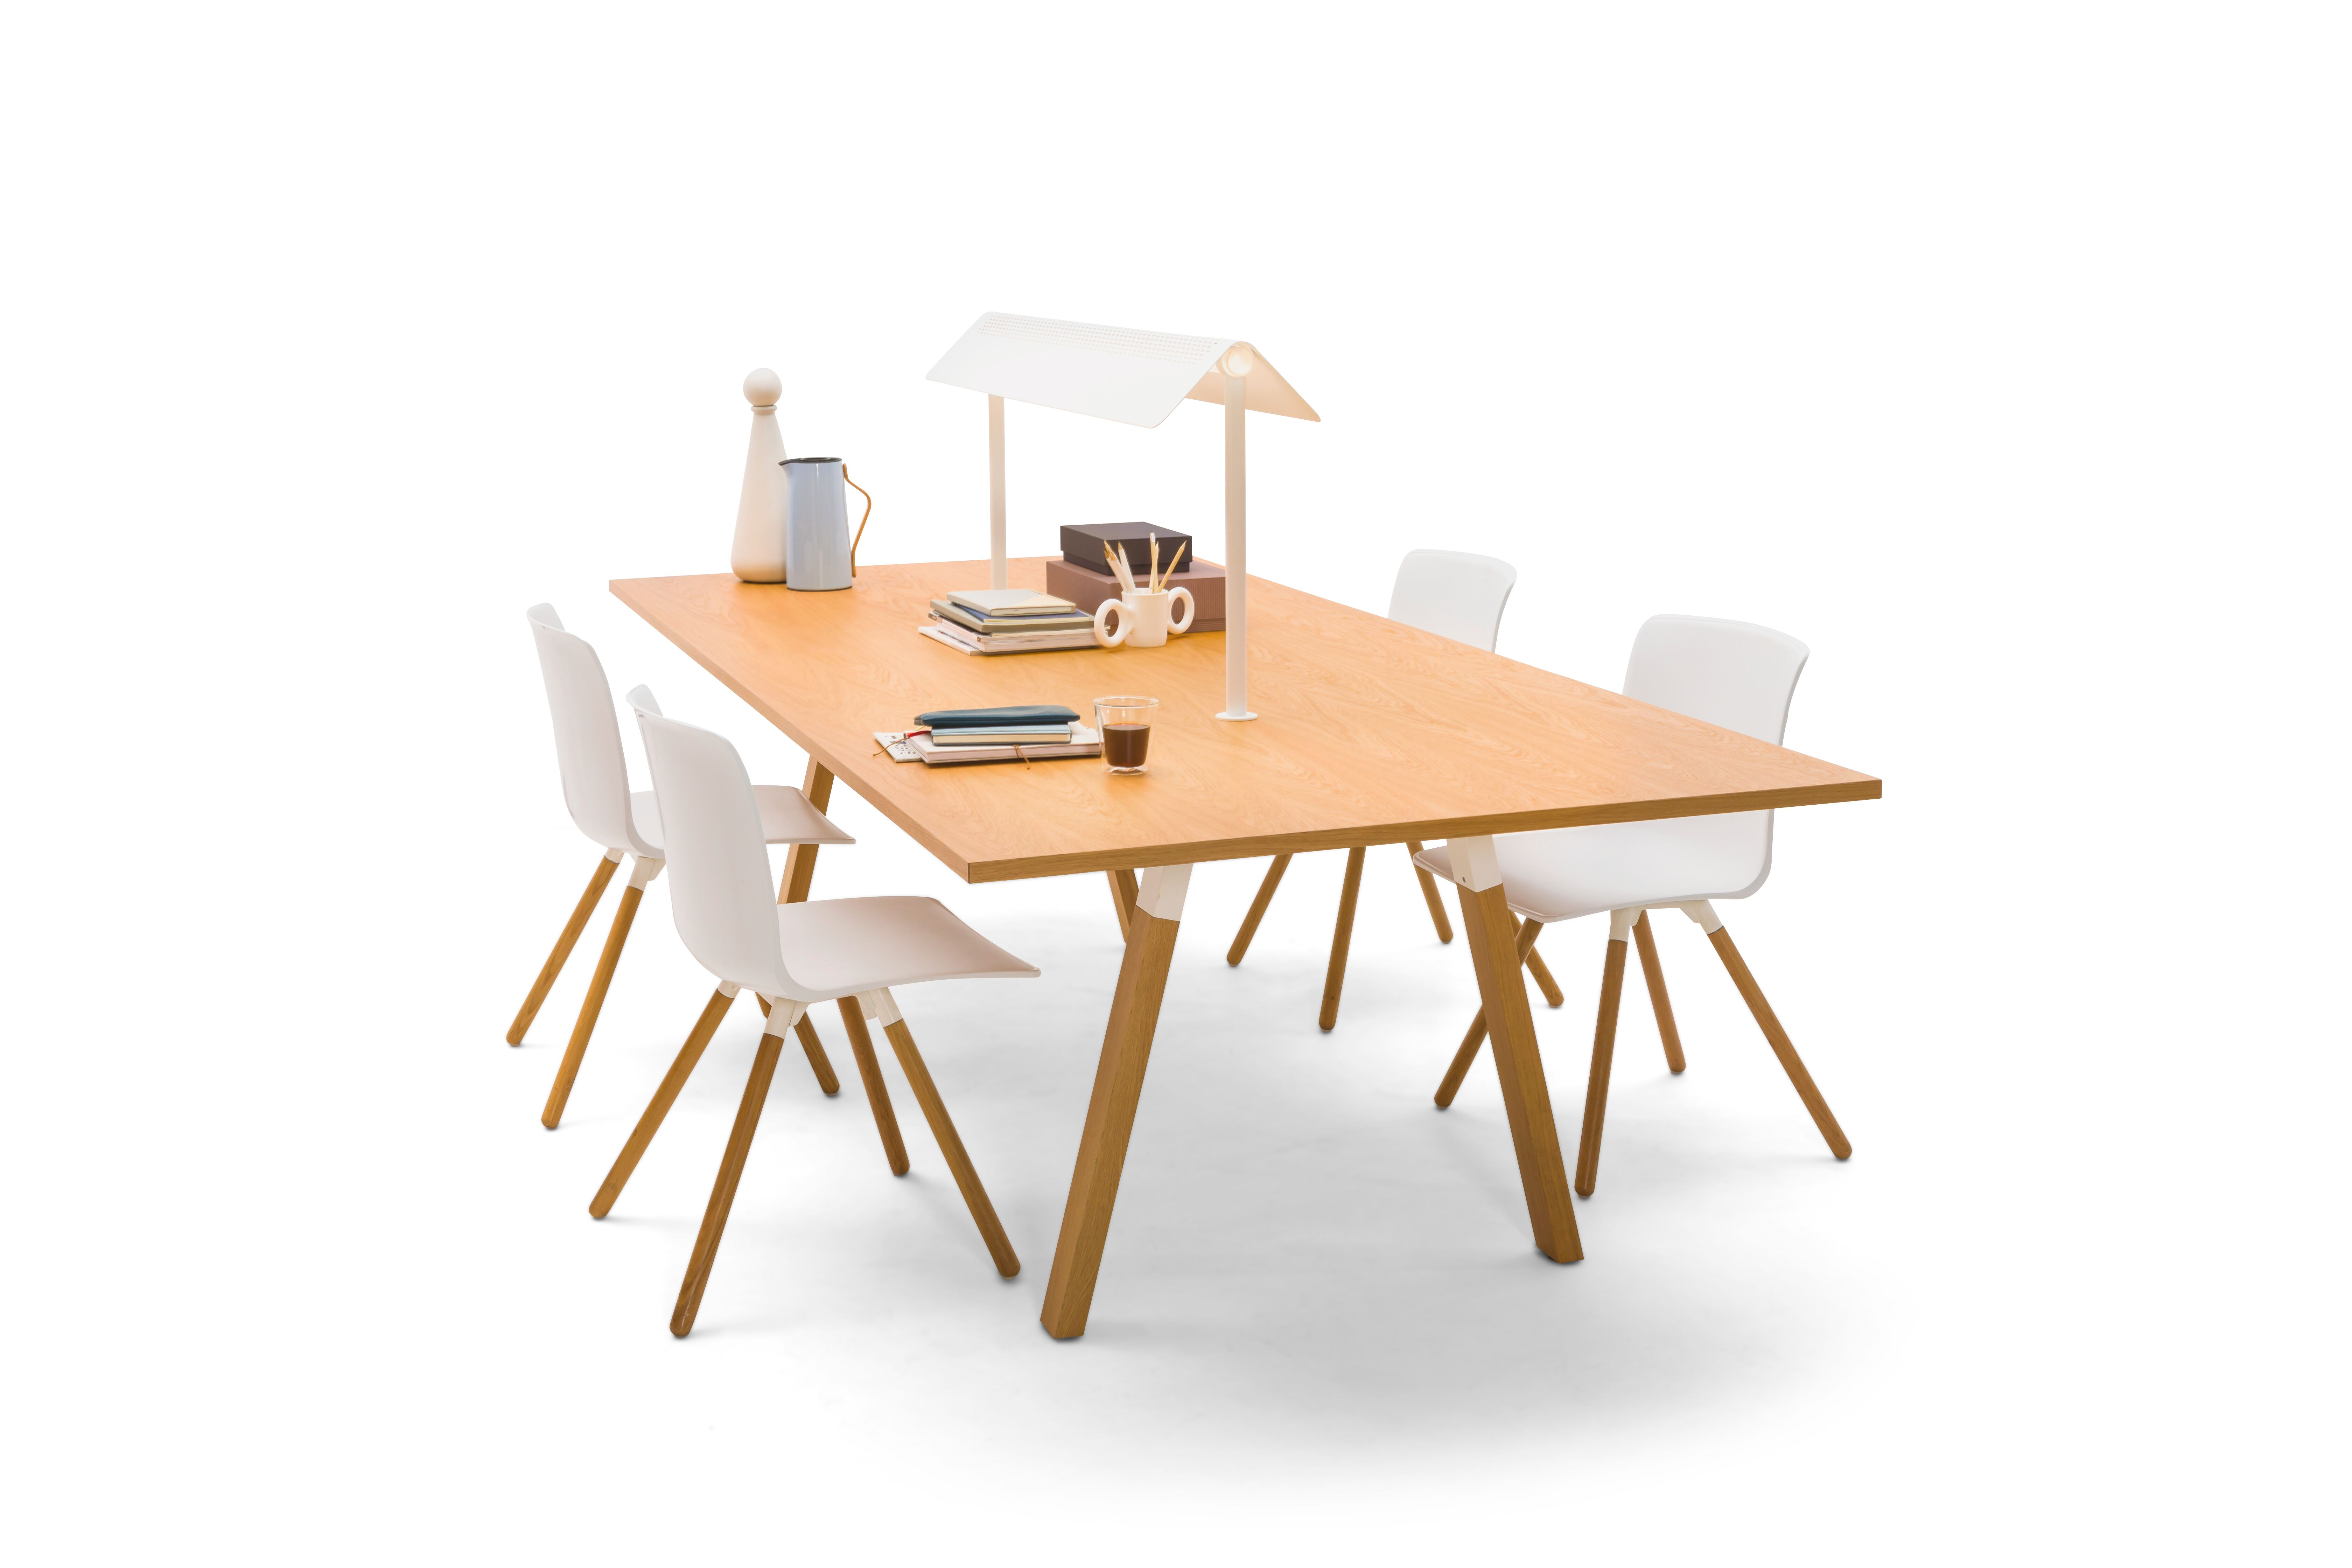 Gispen TEAM Wood rectangle conference table with diagonal oak legs and tabletop with white Nomi Wood chairs with styling front right view